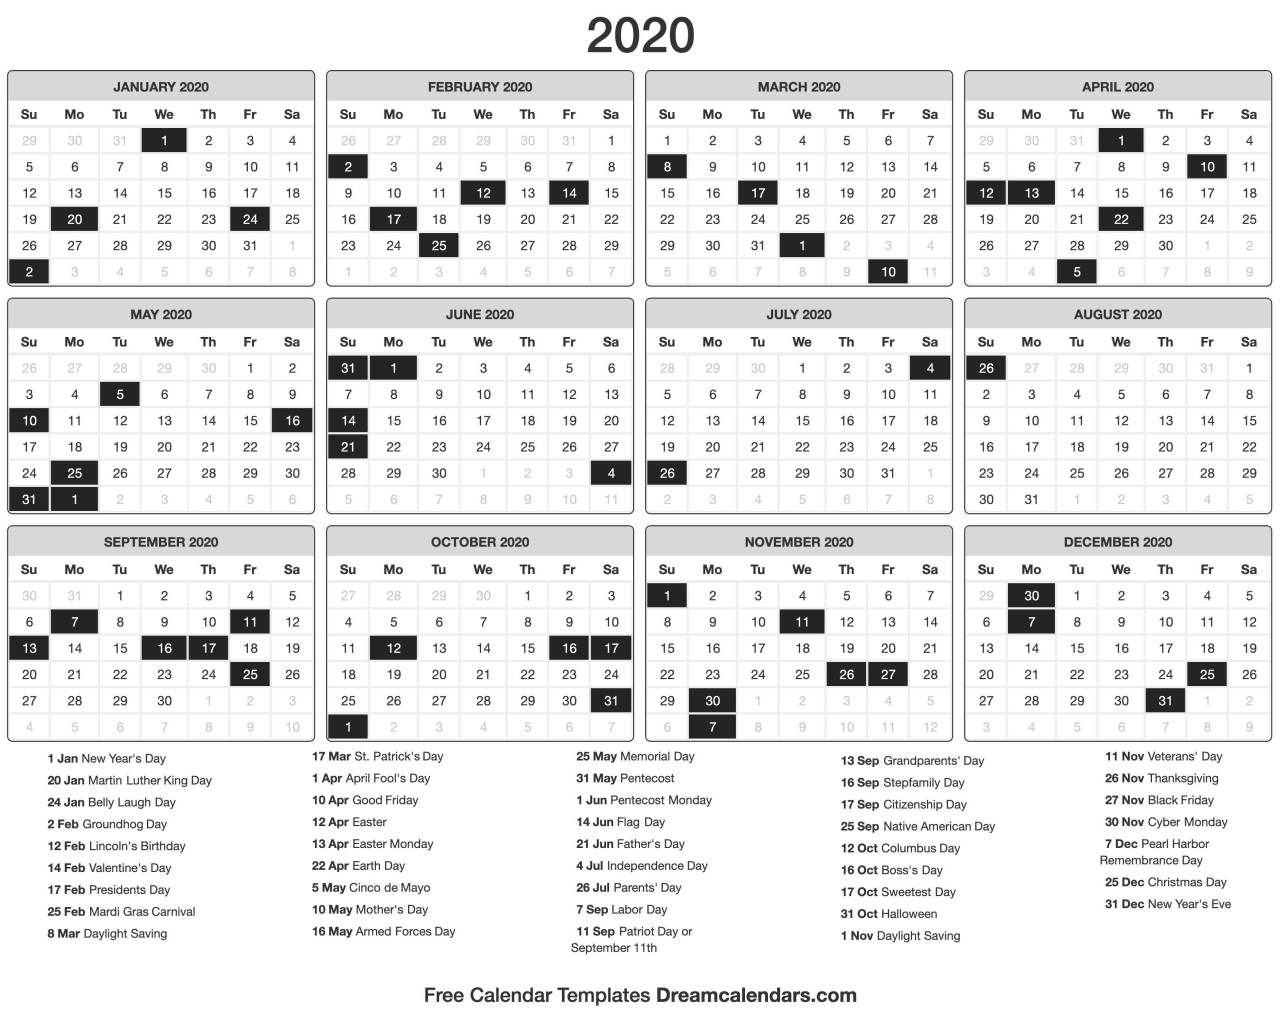 Dream Calendars: Make It 2020 Template — Printable 2020